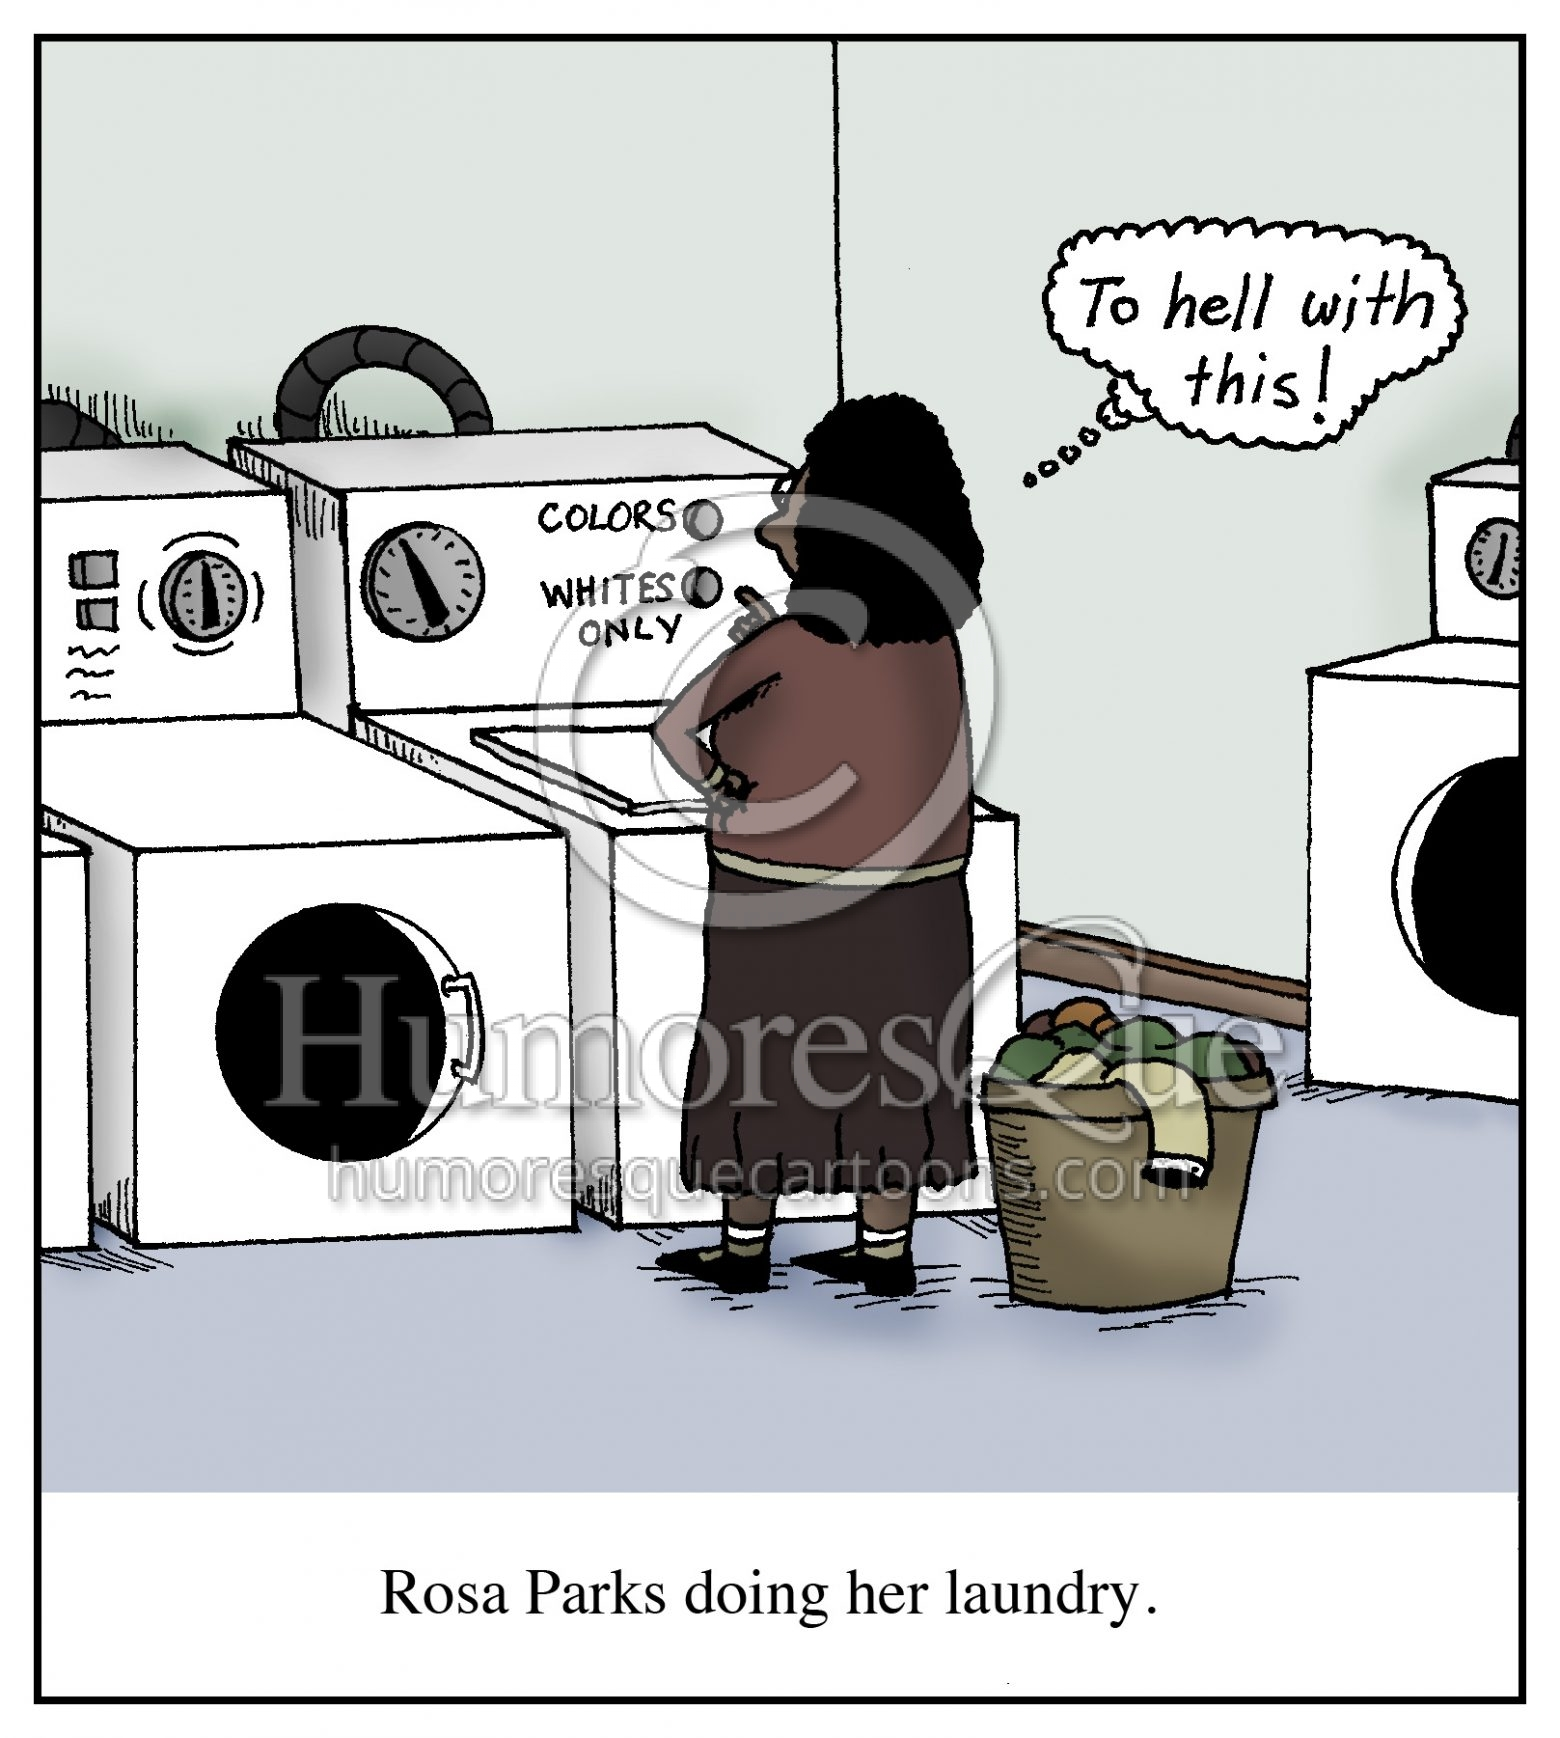 hight resolution of cartoon rosa parks doing her laundry humoresque cartoons